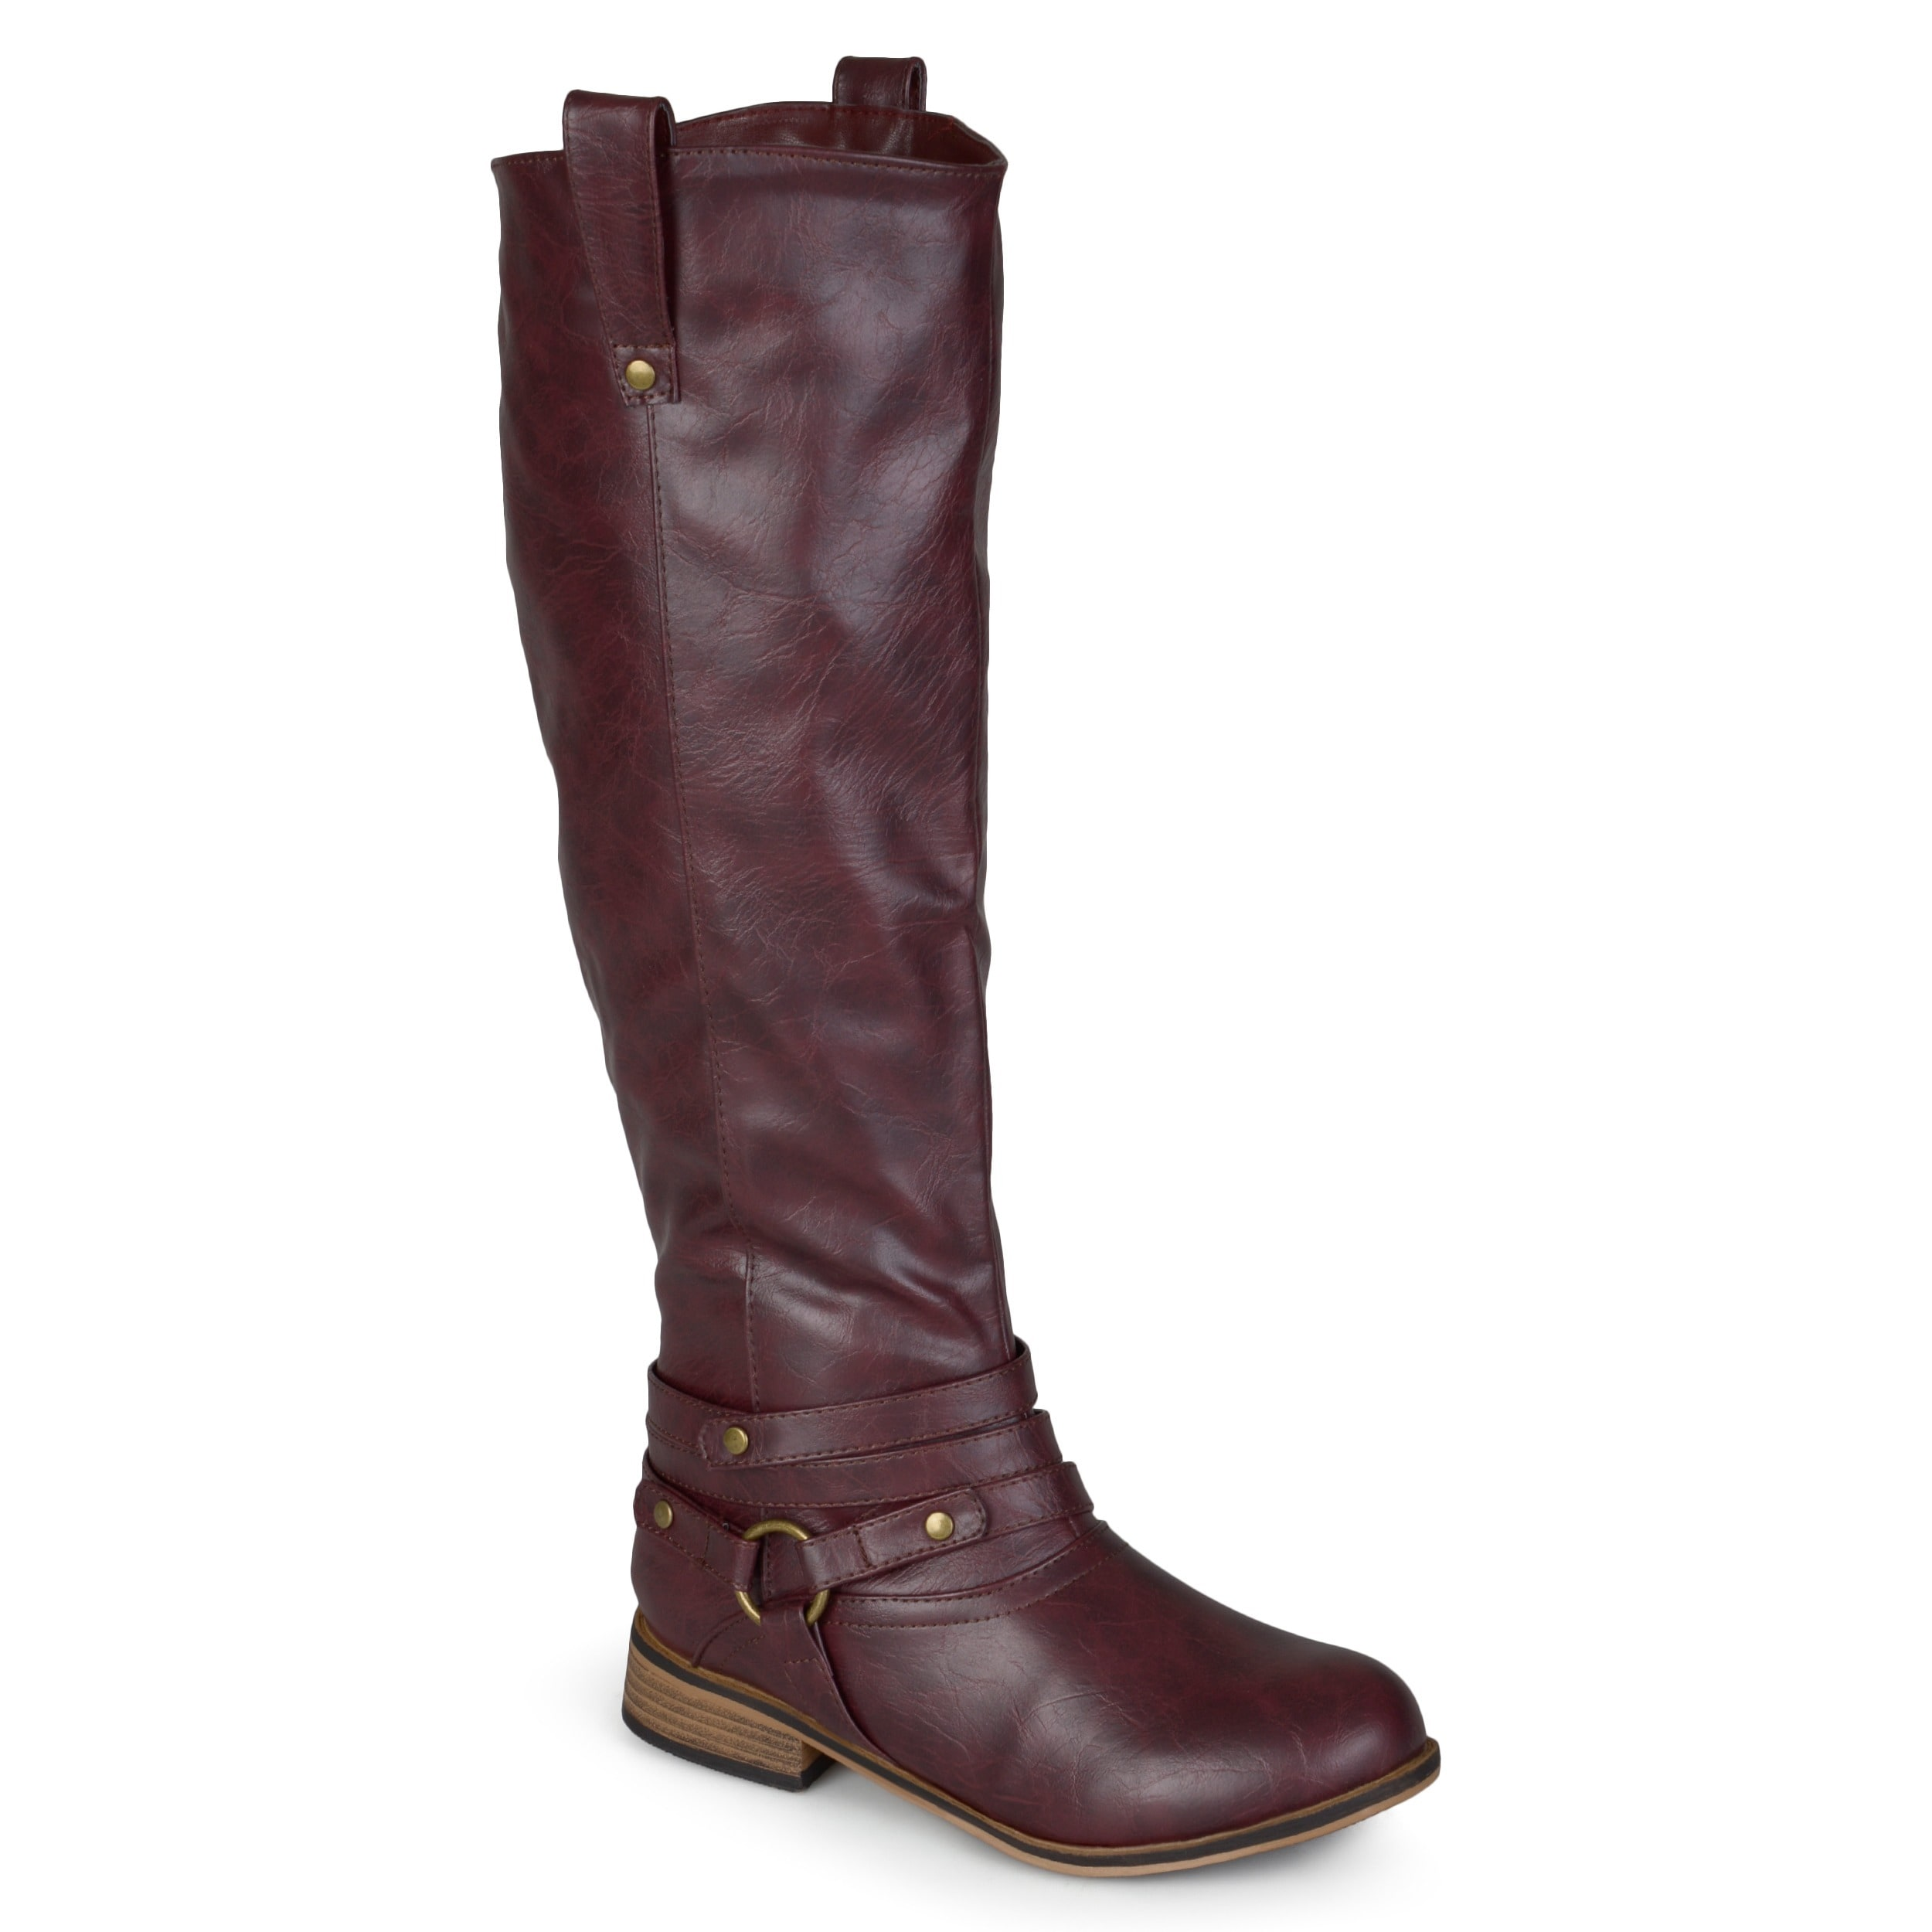 b9c74c42575a Journee Collection Women's 'Walla' Regular and Wide-calf Ankle-strap Knee-high  Riding Boot